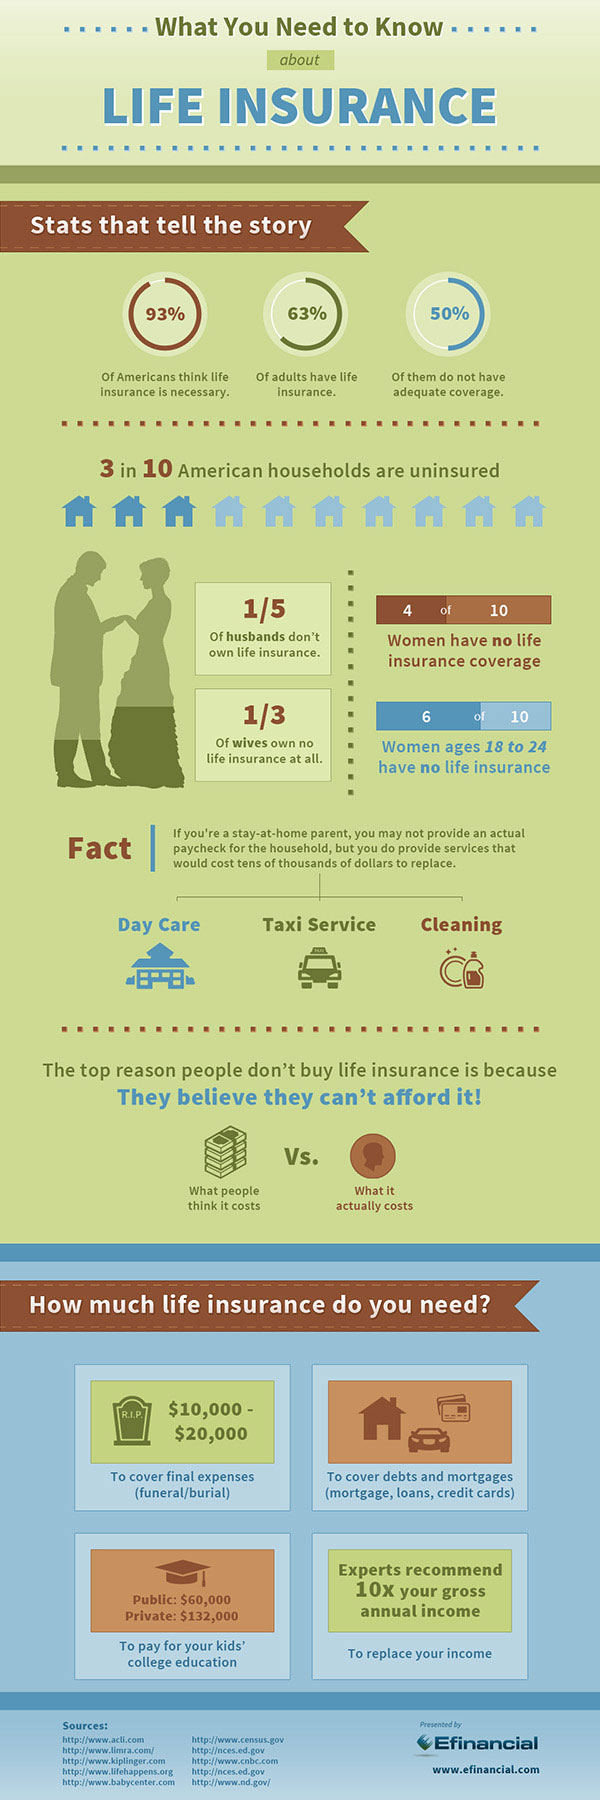 Elephant Auto Insurance Quote New What You Should Know About Life Insurance Infographic  Sfgate . Inspiration